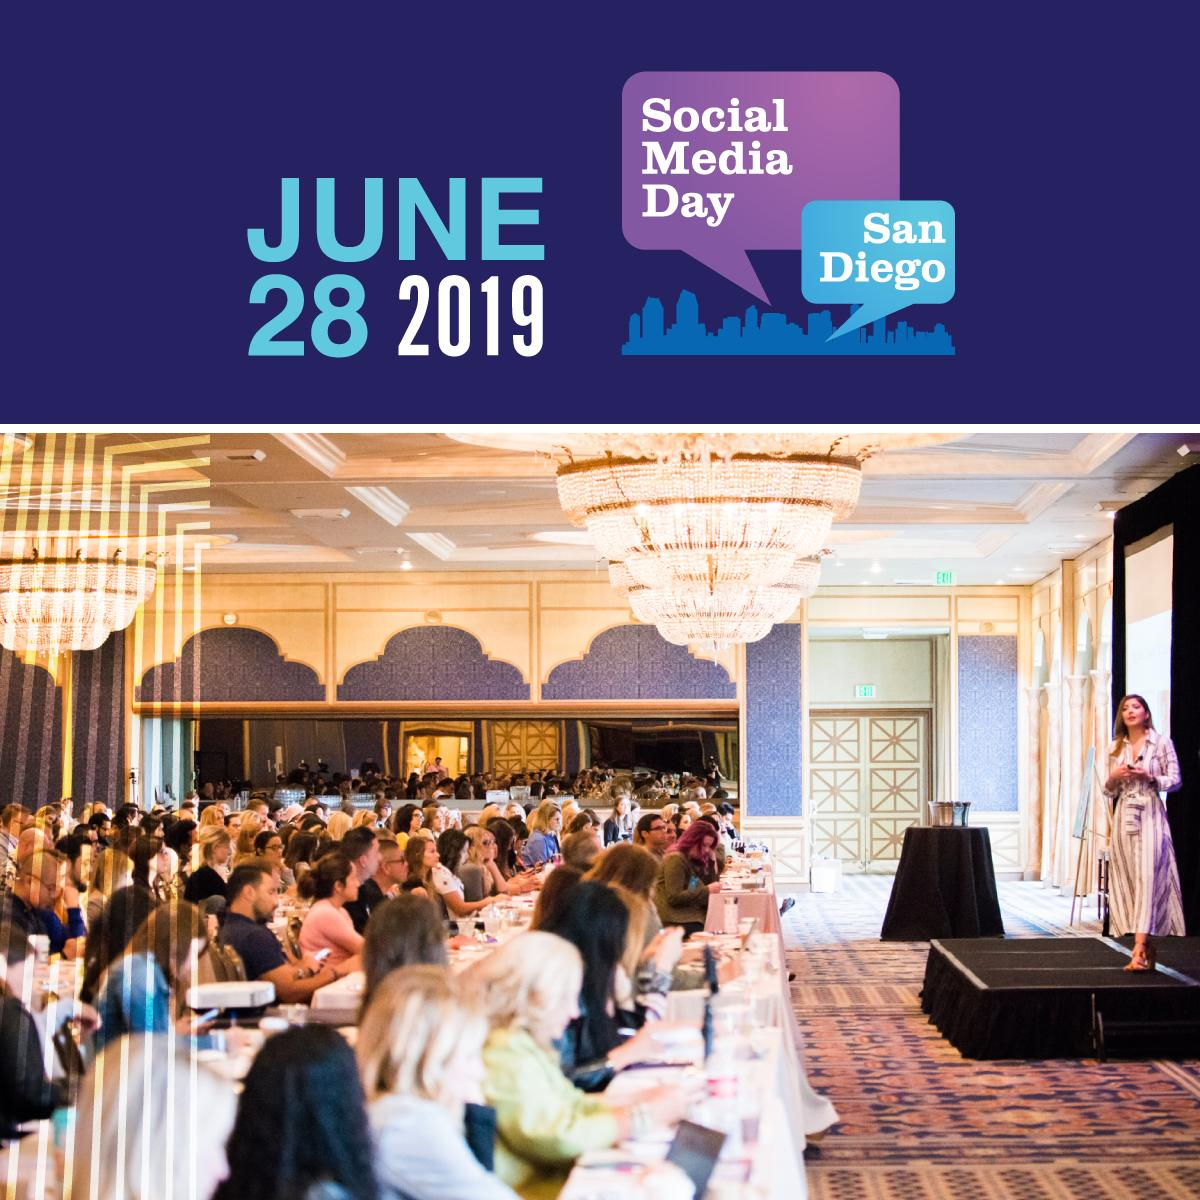 #SMDaySD is just days away. There's still time to grab your tickets and save! Prices jump again Monday, 6/24 at midnight. Secure your spot, and we'll see you there 😎 https://socialmediadaysandiego.com